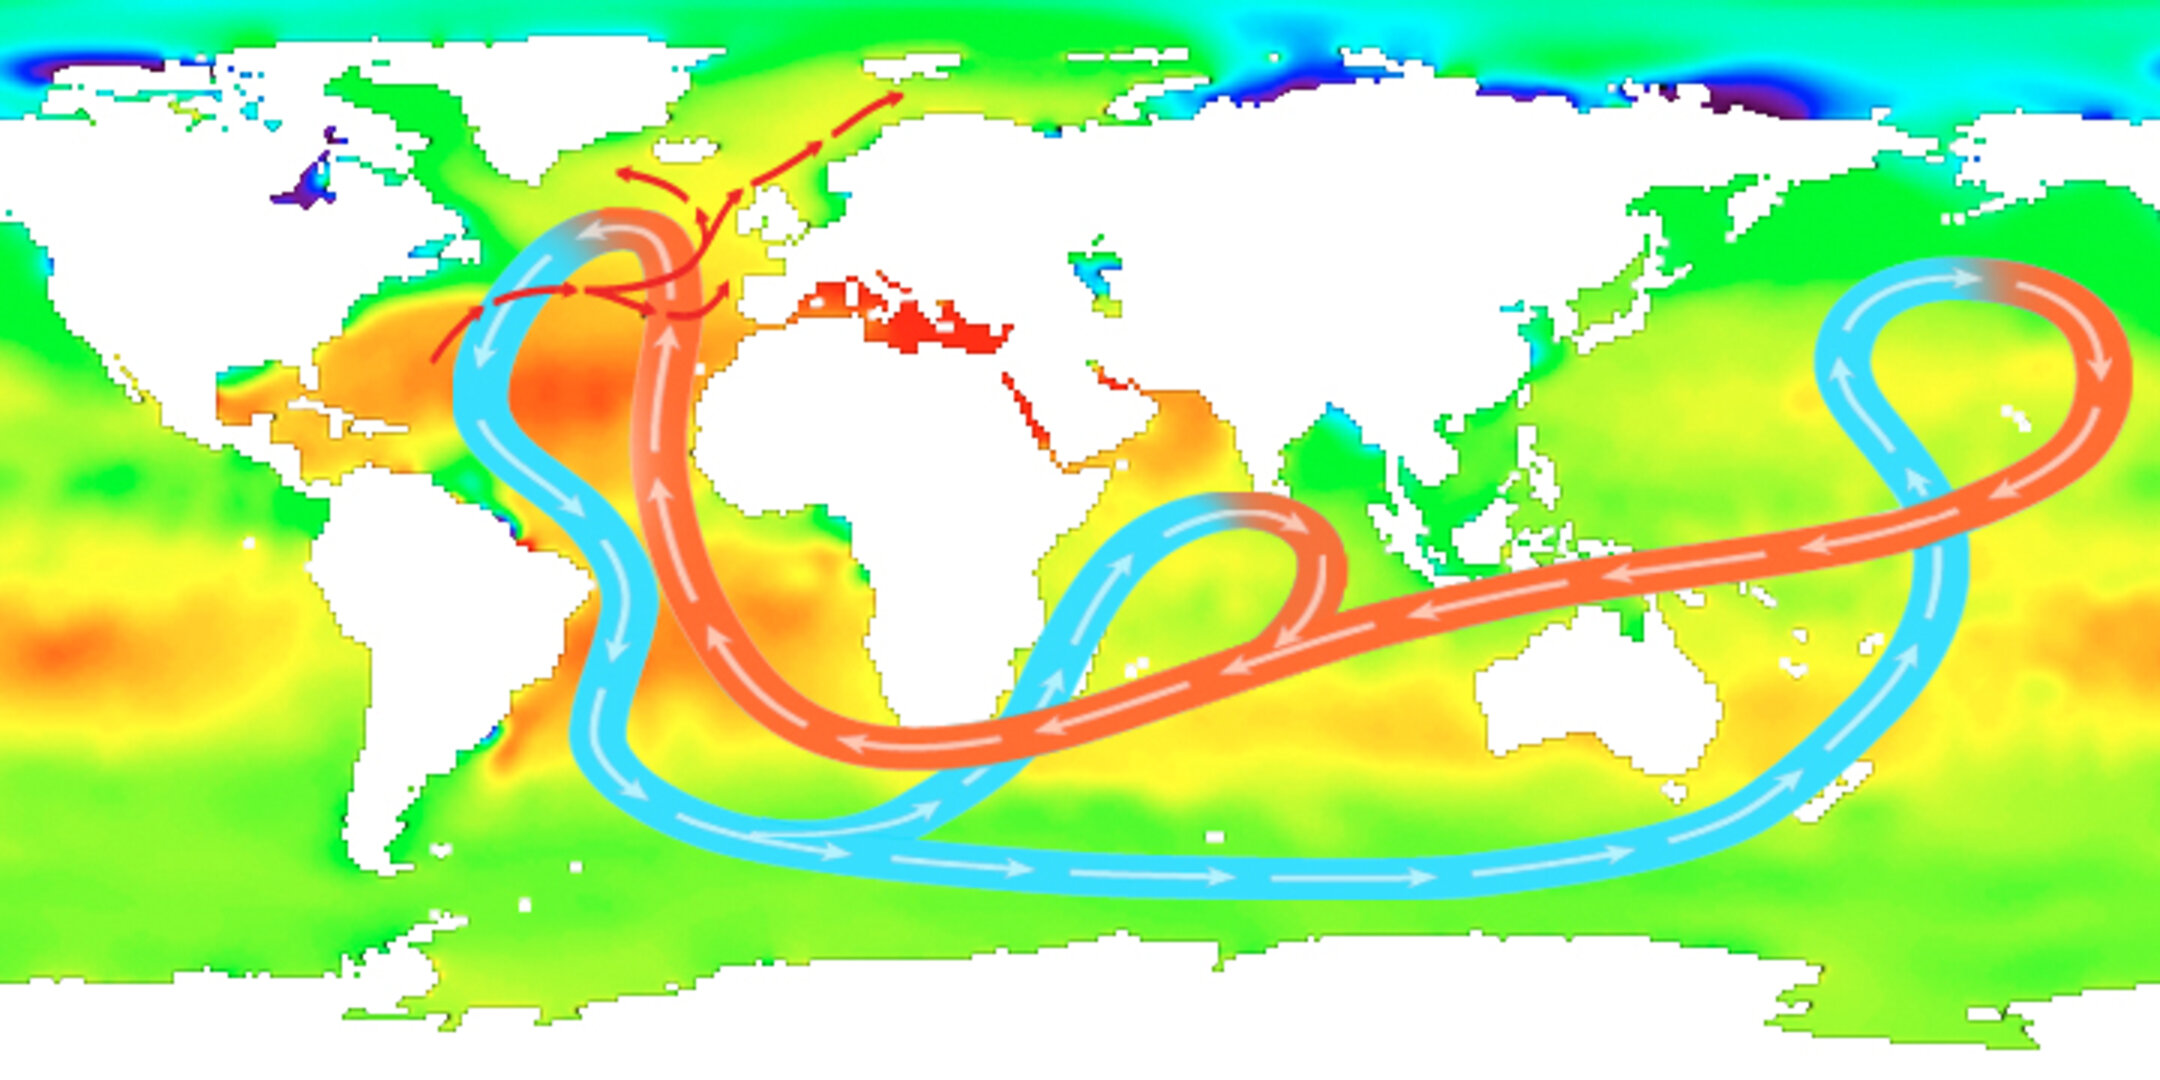 Sea-surface salinity and ocean circulation